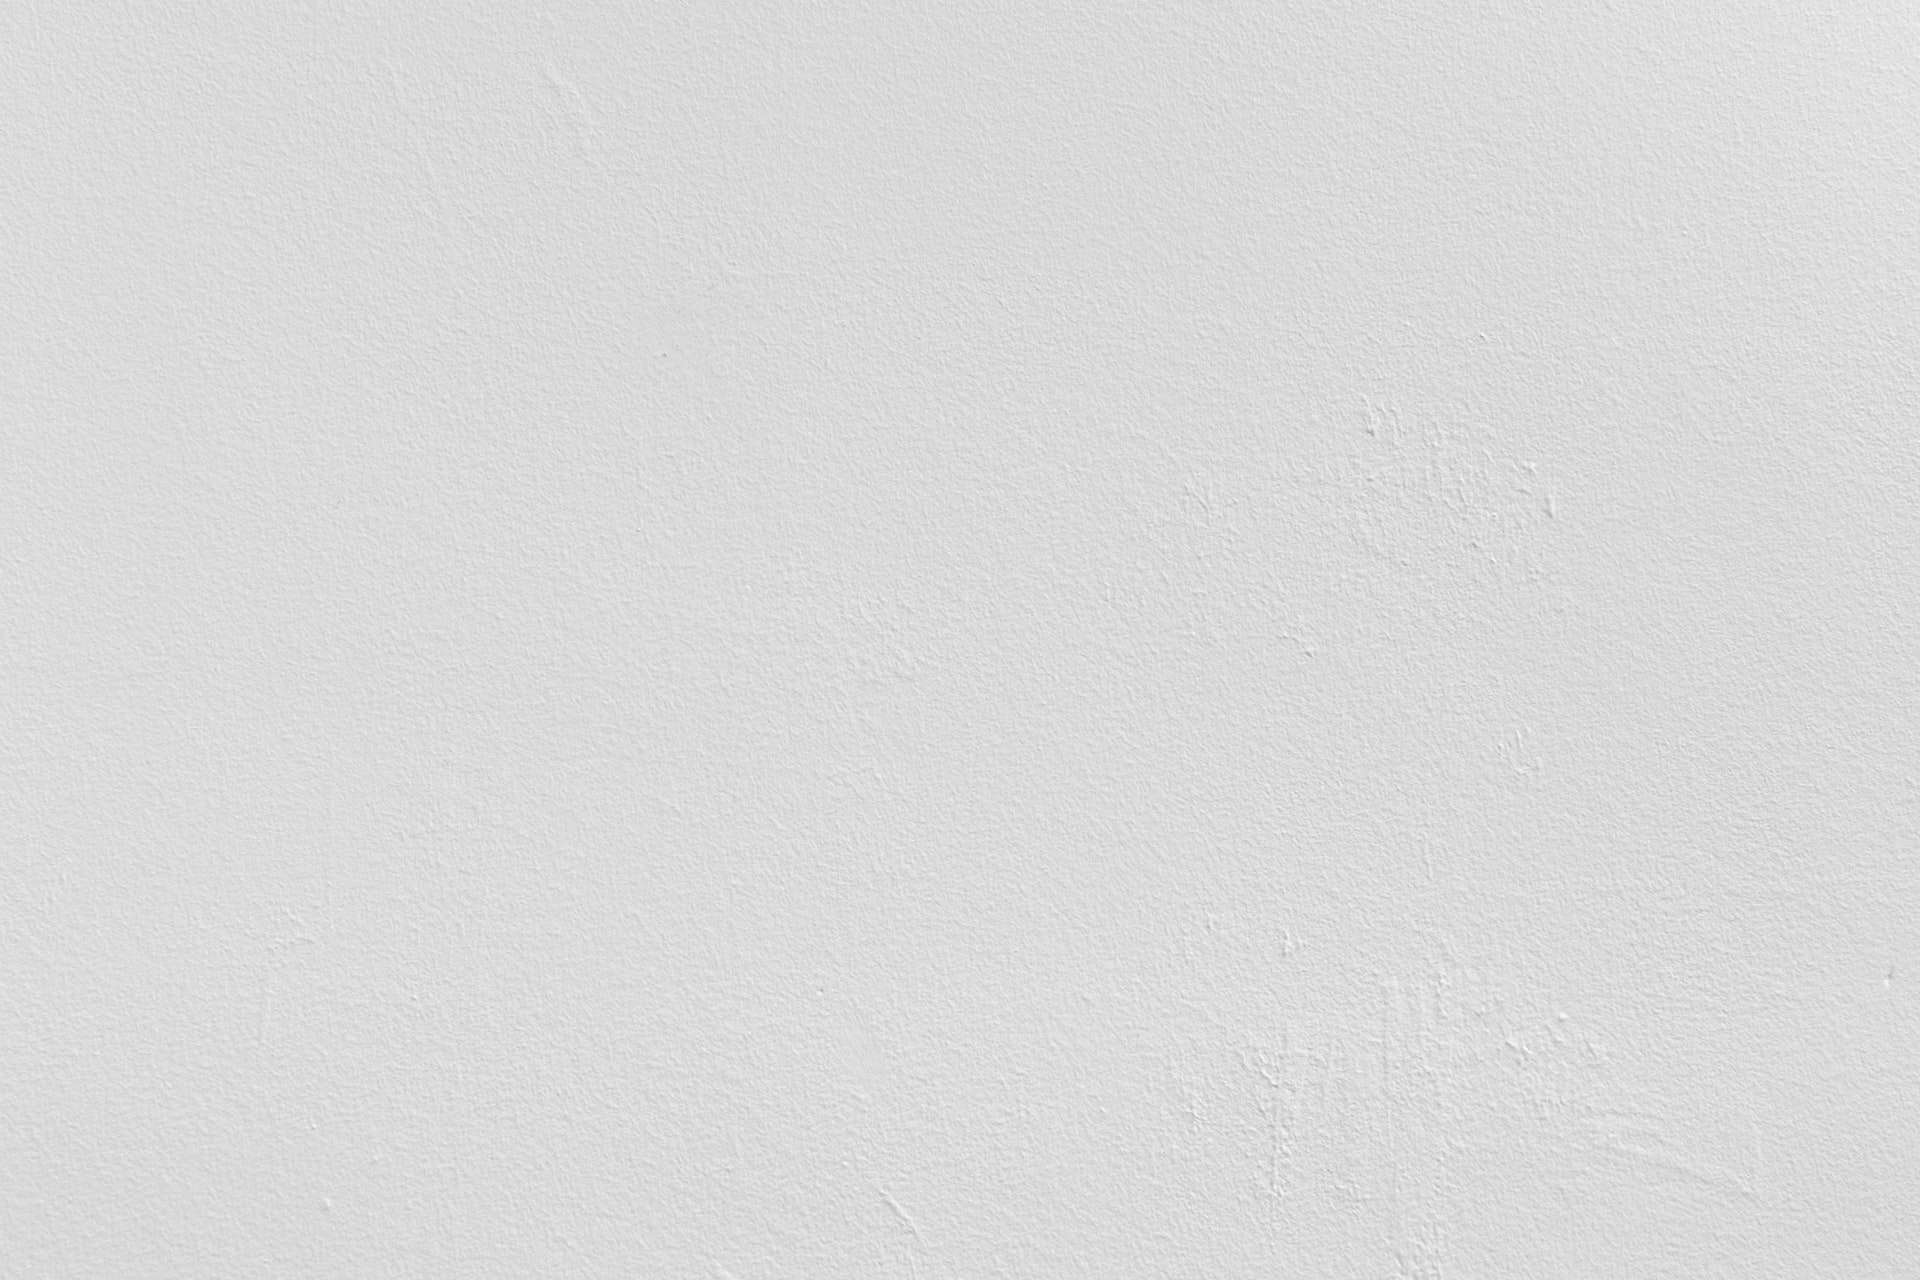 Concrete rough background